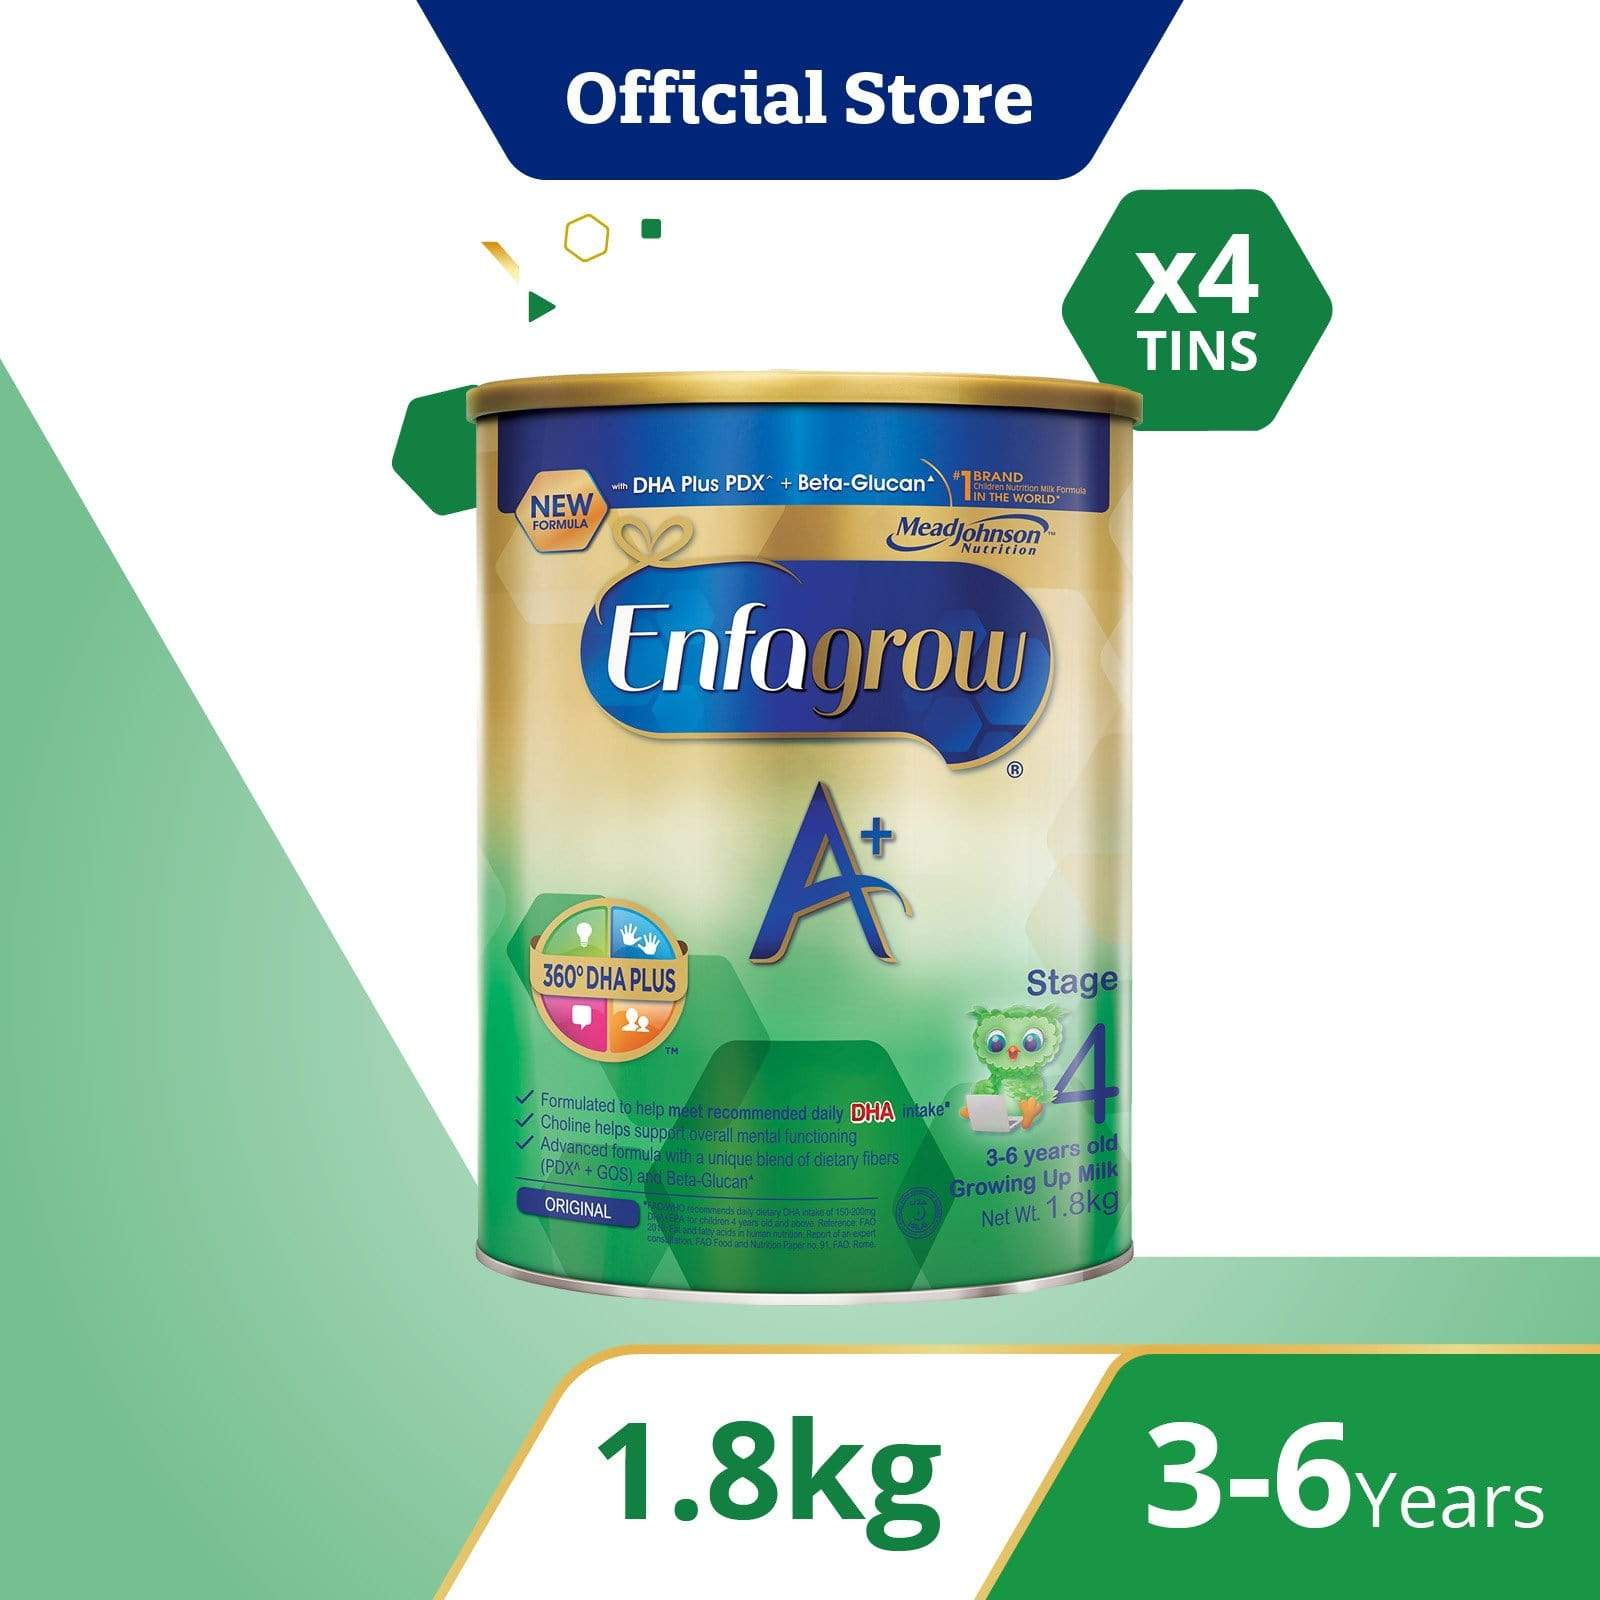 Enfagrow A+ Stage 4 (1.8kg) Bundle of 4